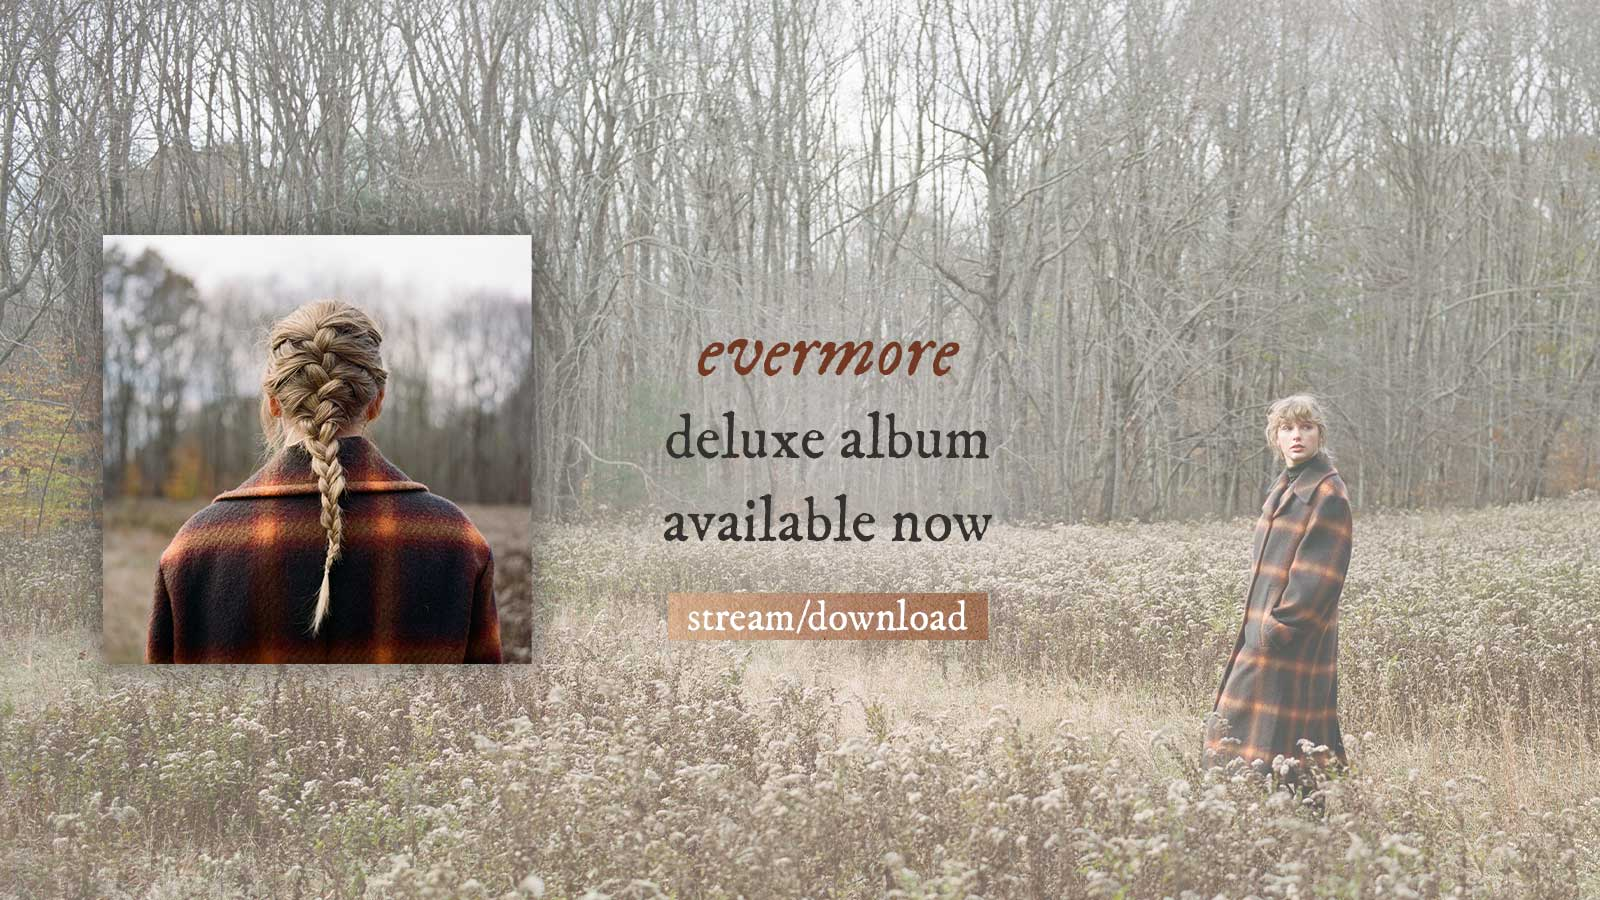 evermore deluxe album available now